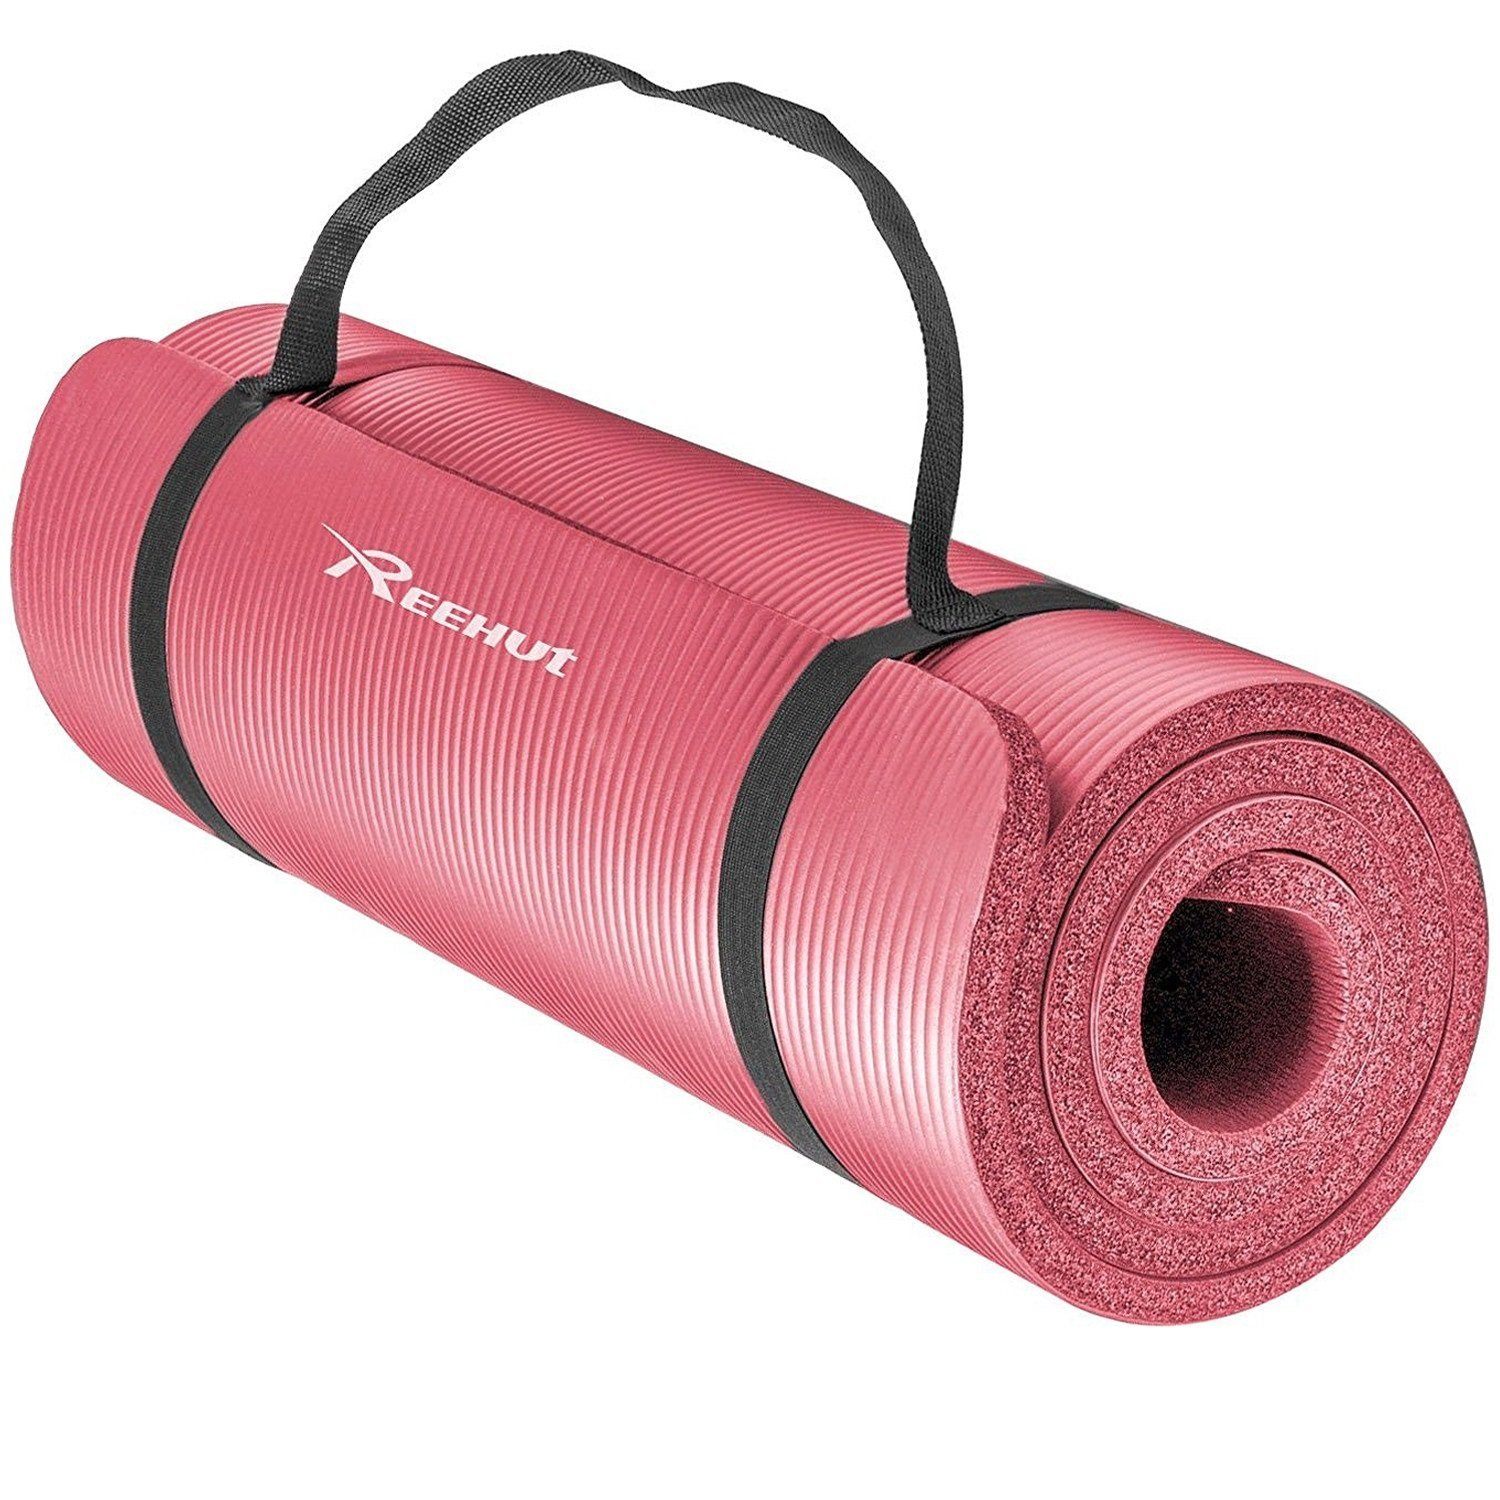 REEHUT Exercise Mat NBR Fitness Yoga Mat 1/2-Inch Extra Thick High Density NBR Mat for Pilates, Fitness & Workout with Carry Strap - Blue